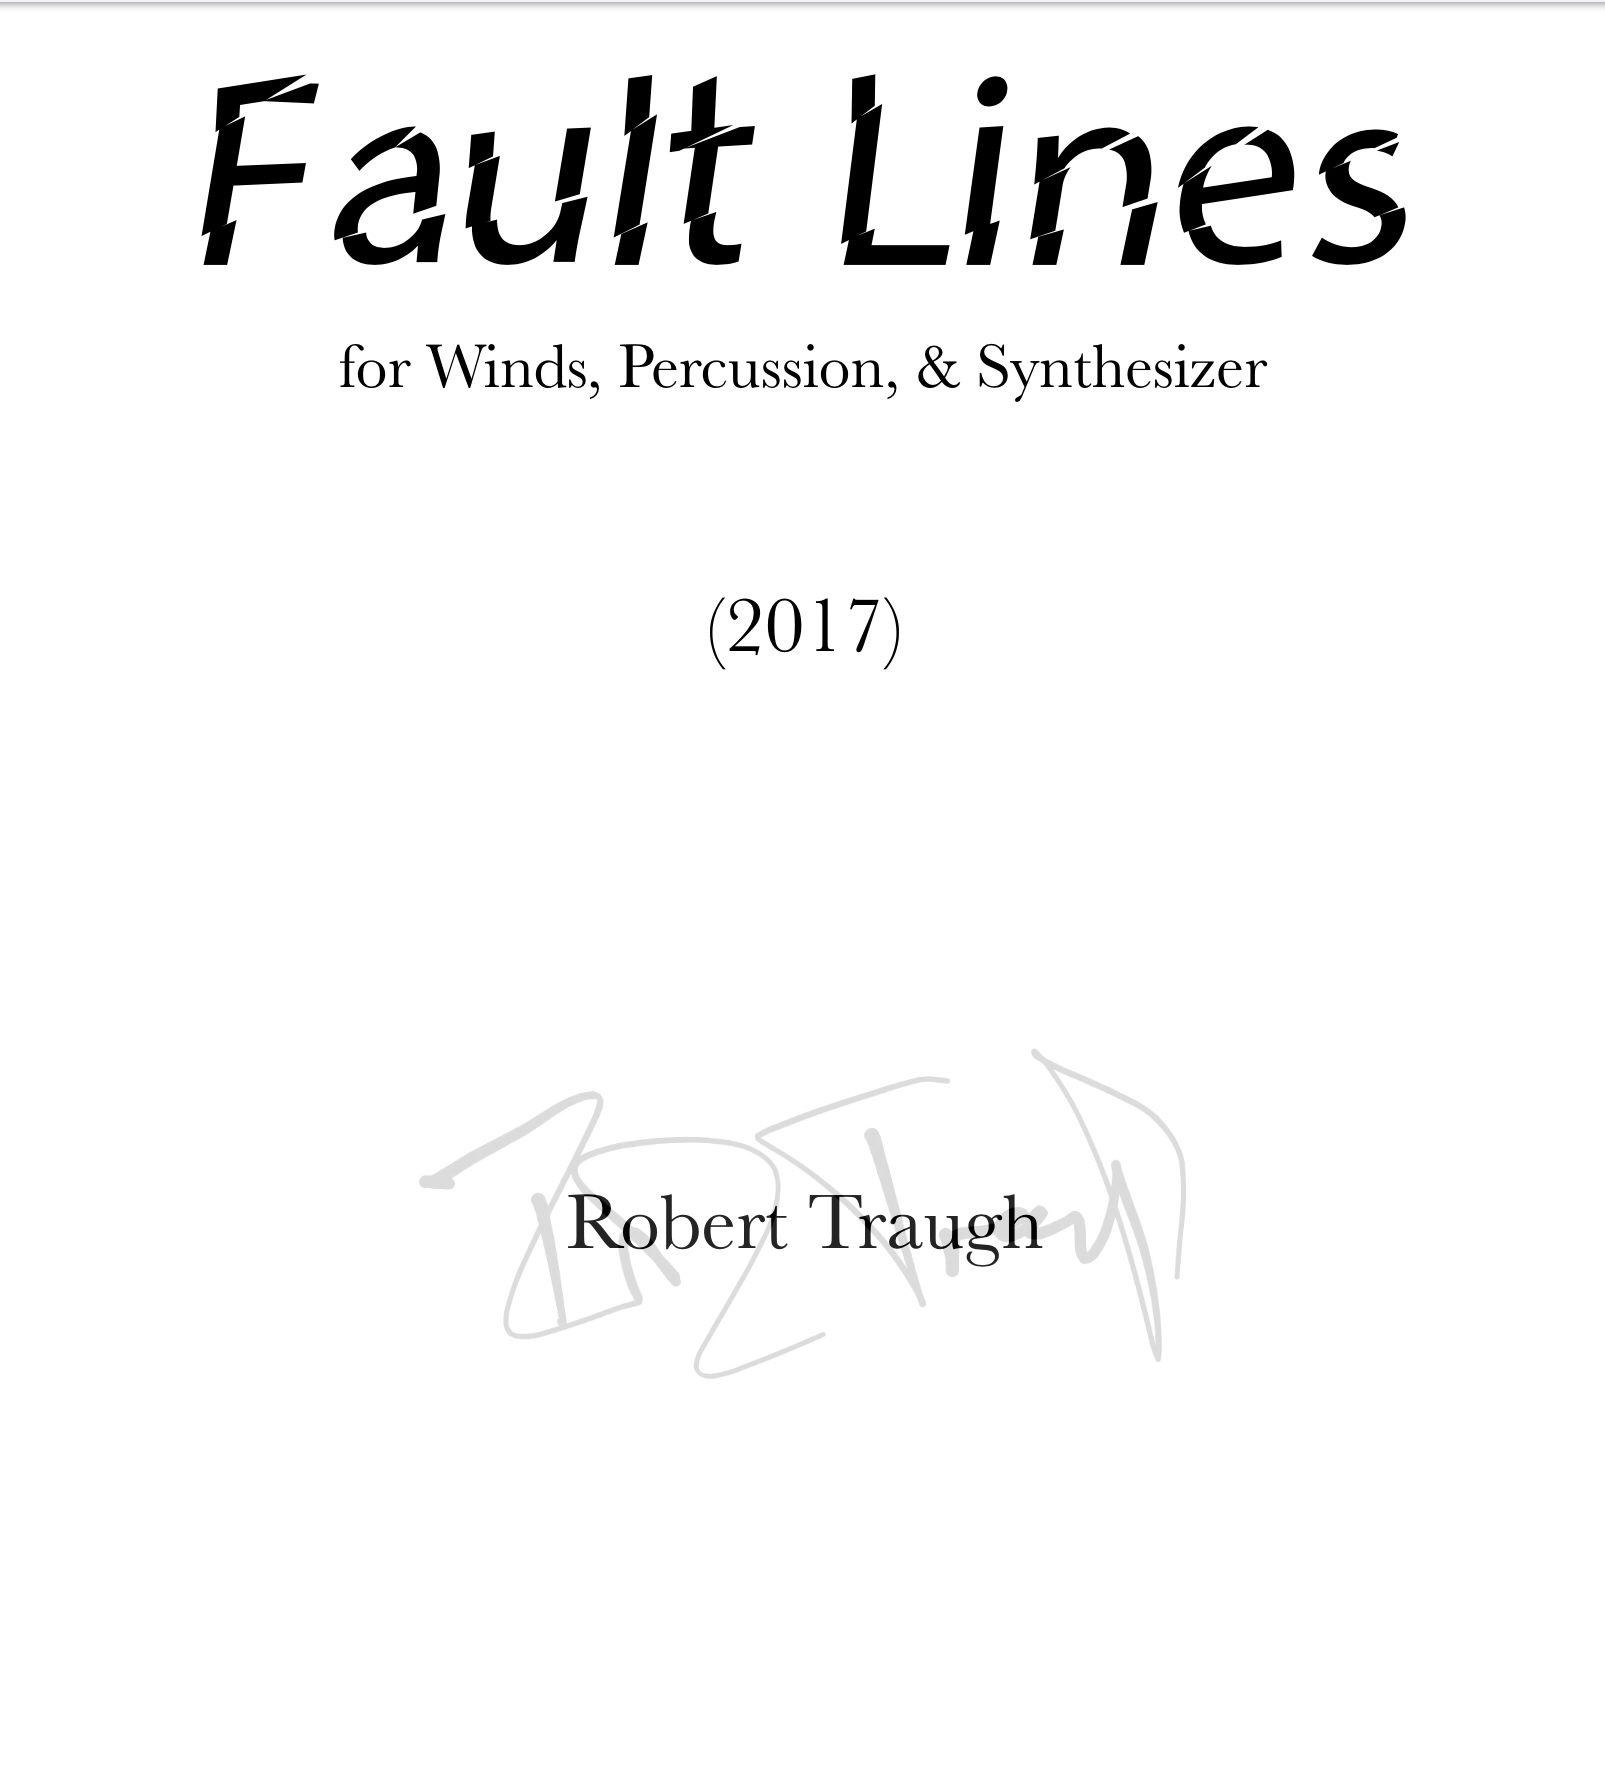 Fault Lines by Rob Traugh